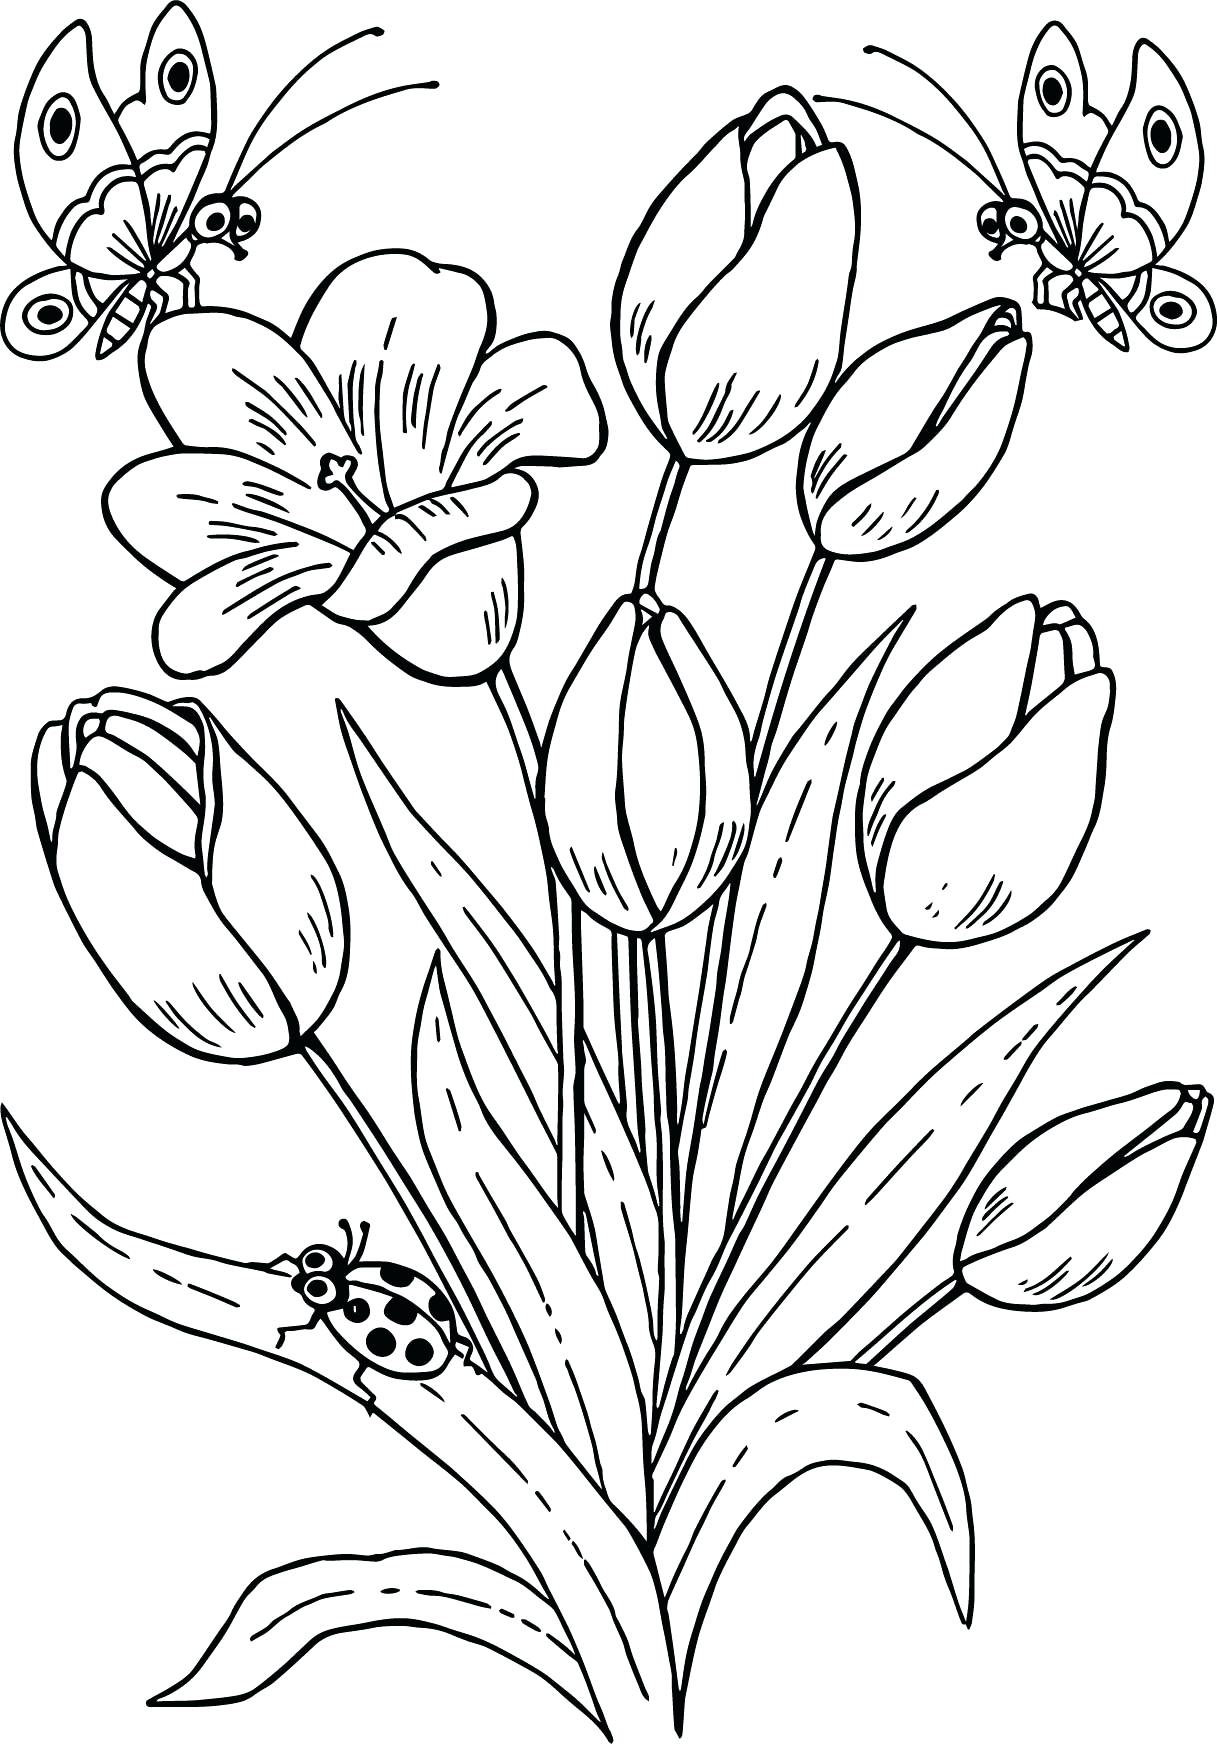 1217x1744 Coloring Pages Tulip Coloring Pages Tulip Flower Coloring Pages